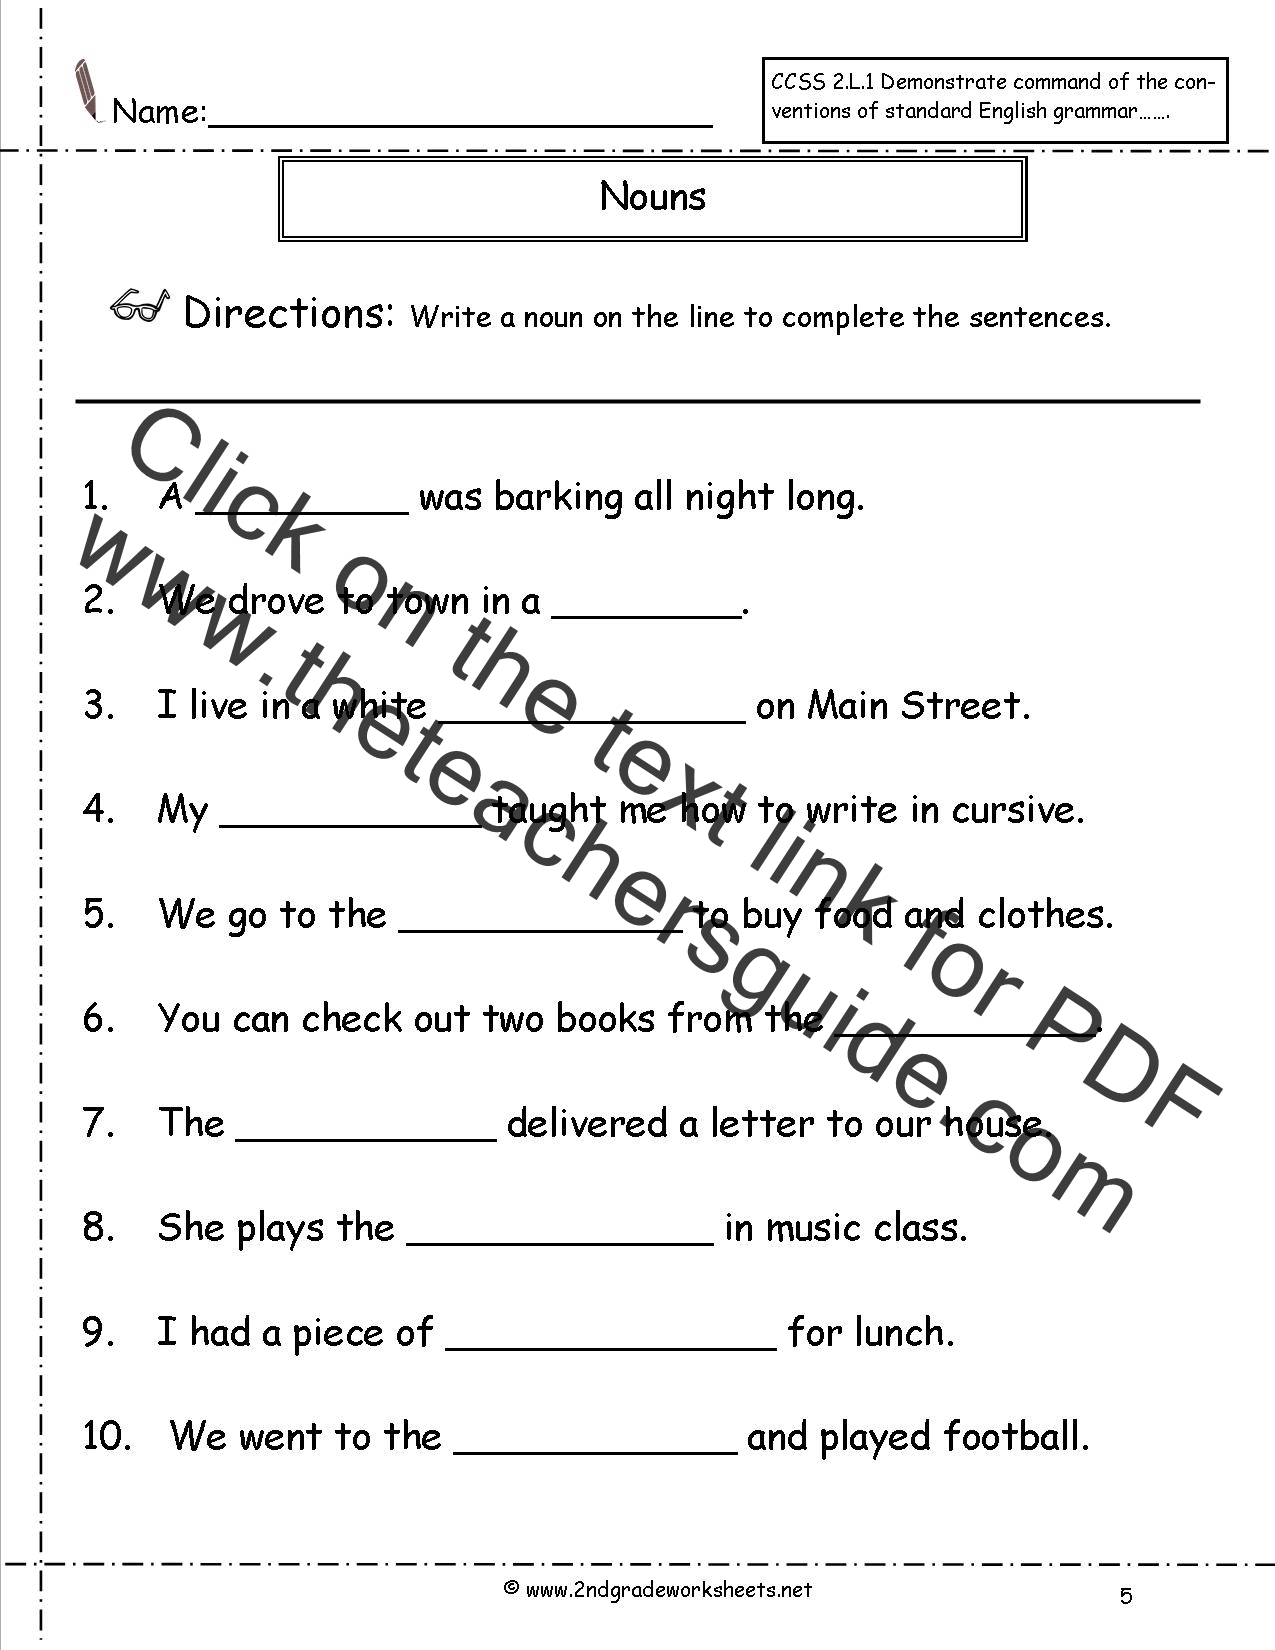 Nouns Worksheets and Printouts – Proper Noun Worksheet